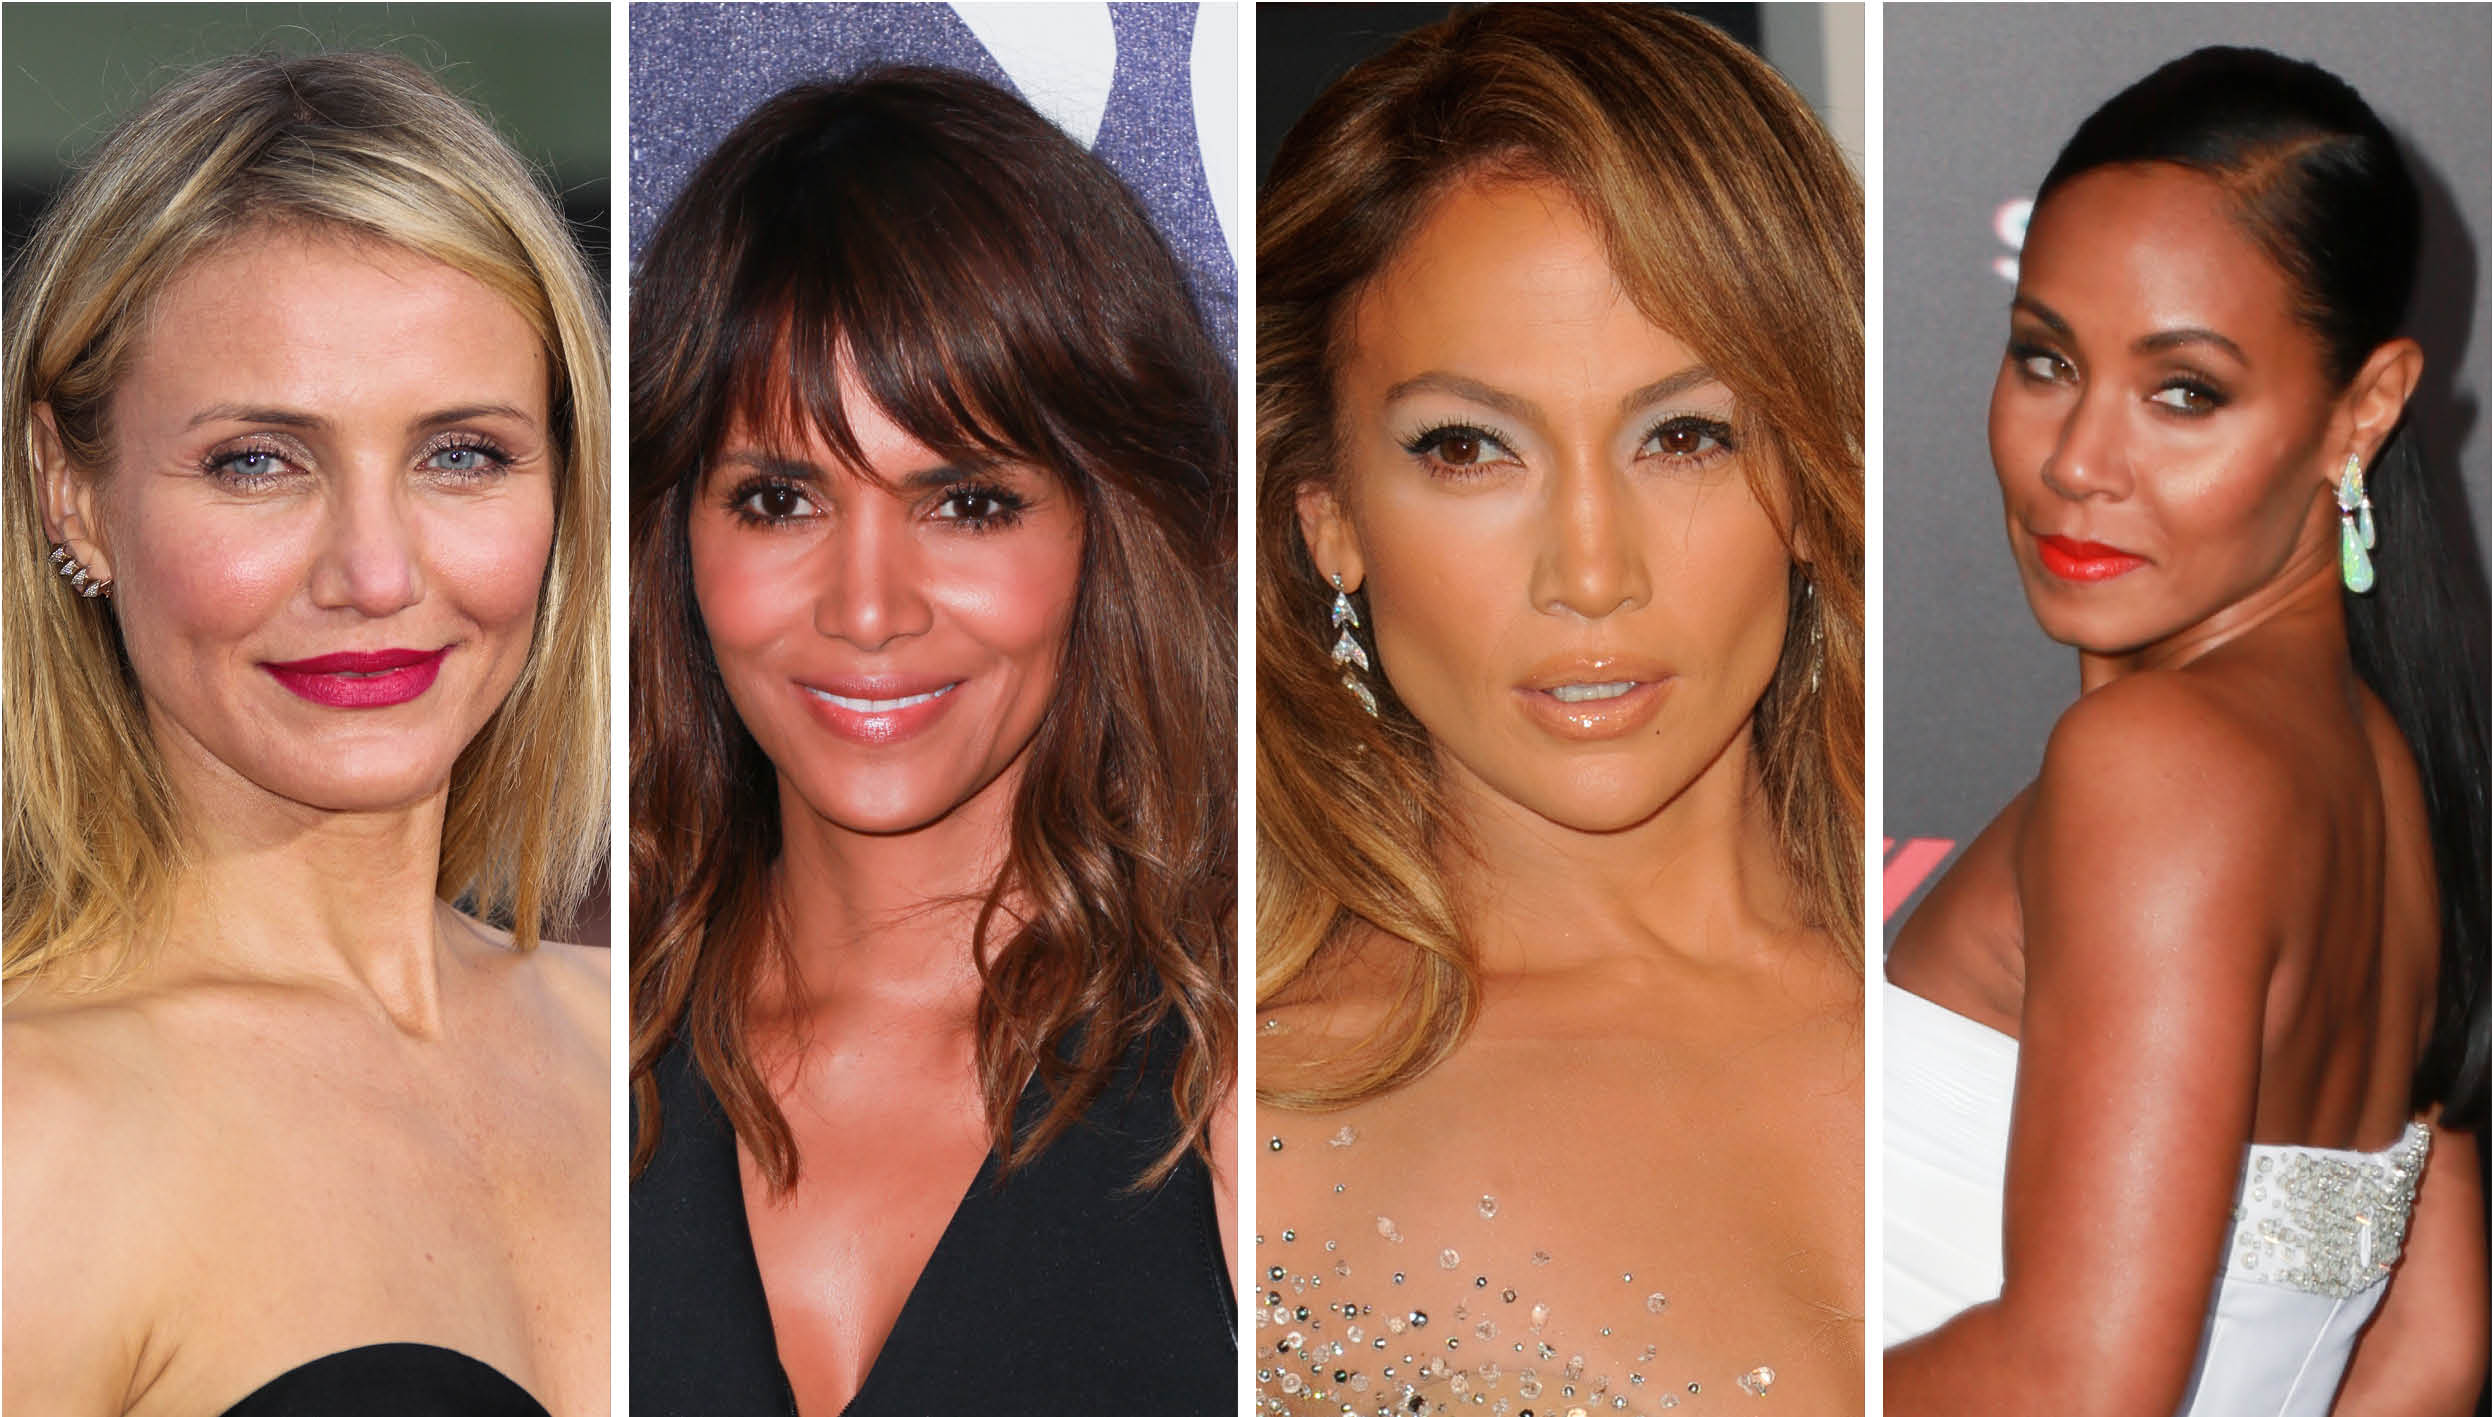 Famous Women Who Were Over 40 and Pregnant May Have Fueled Fertility Myths